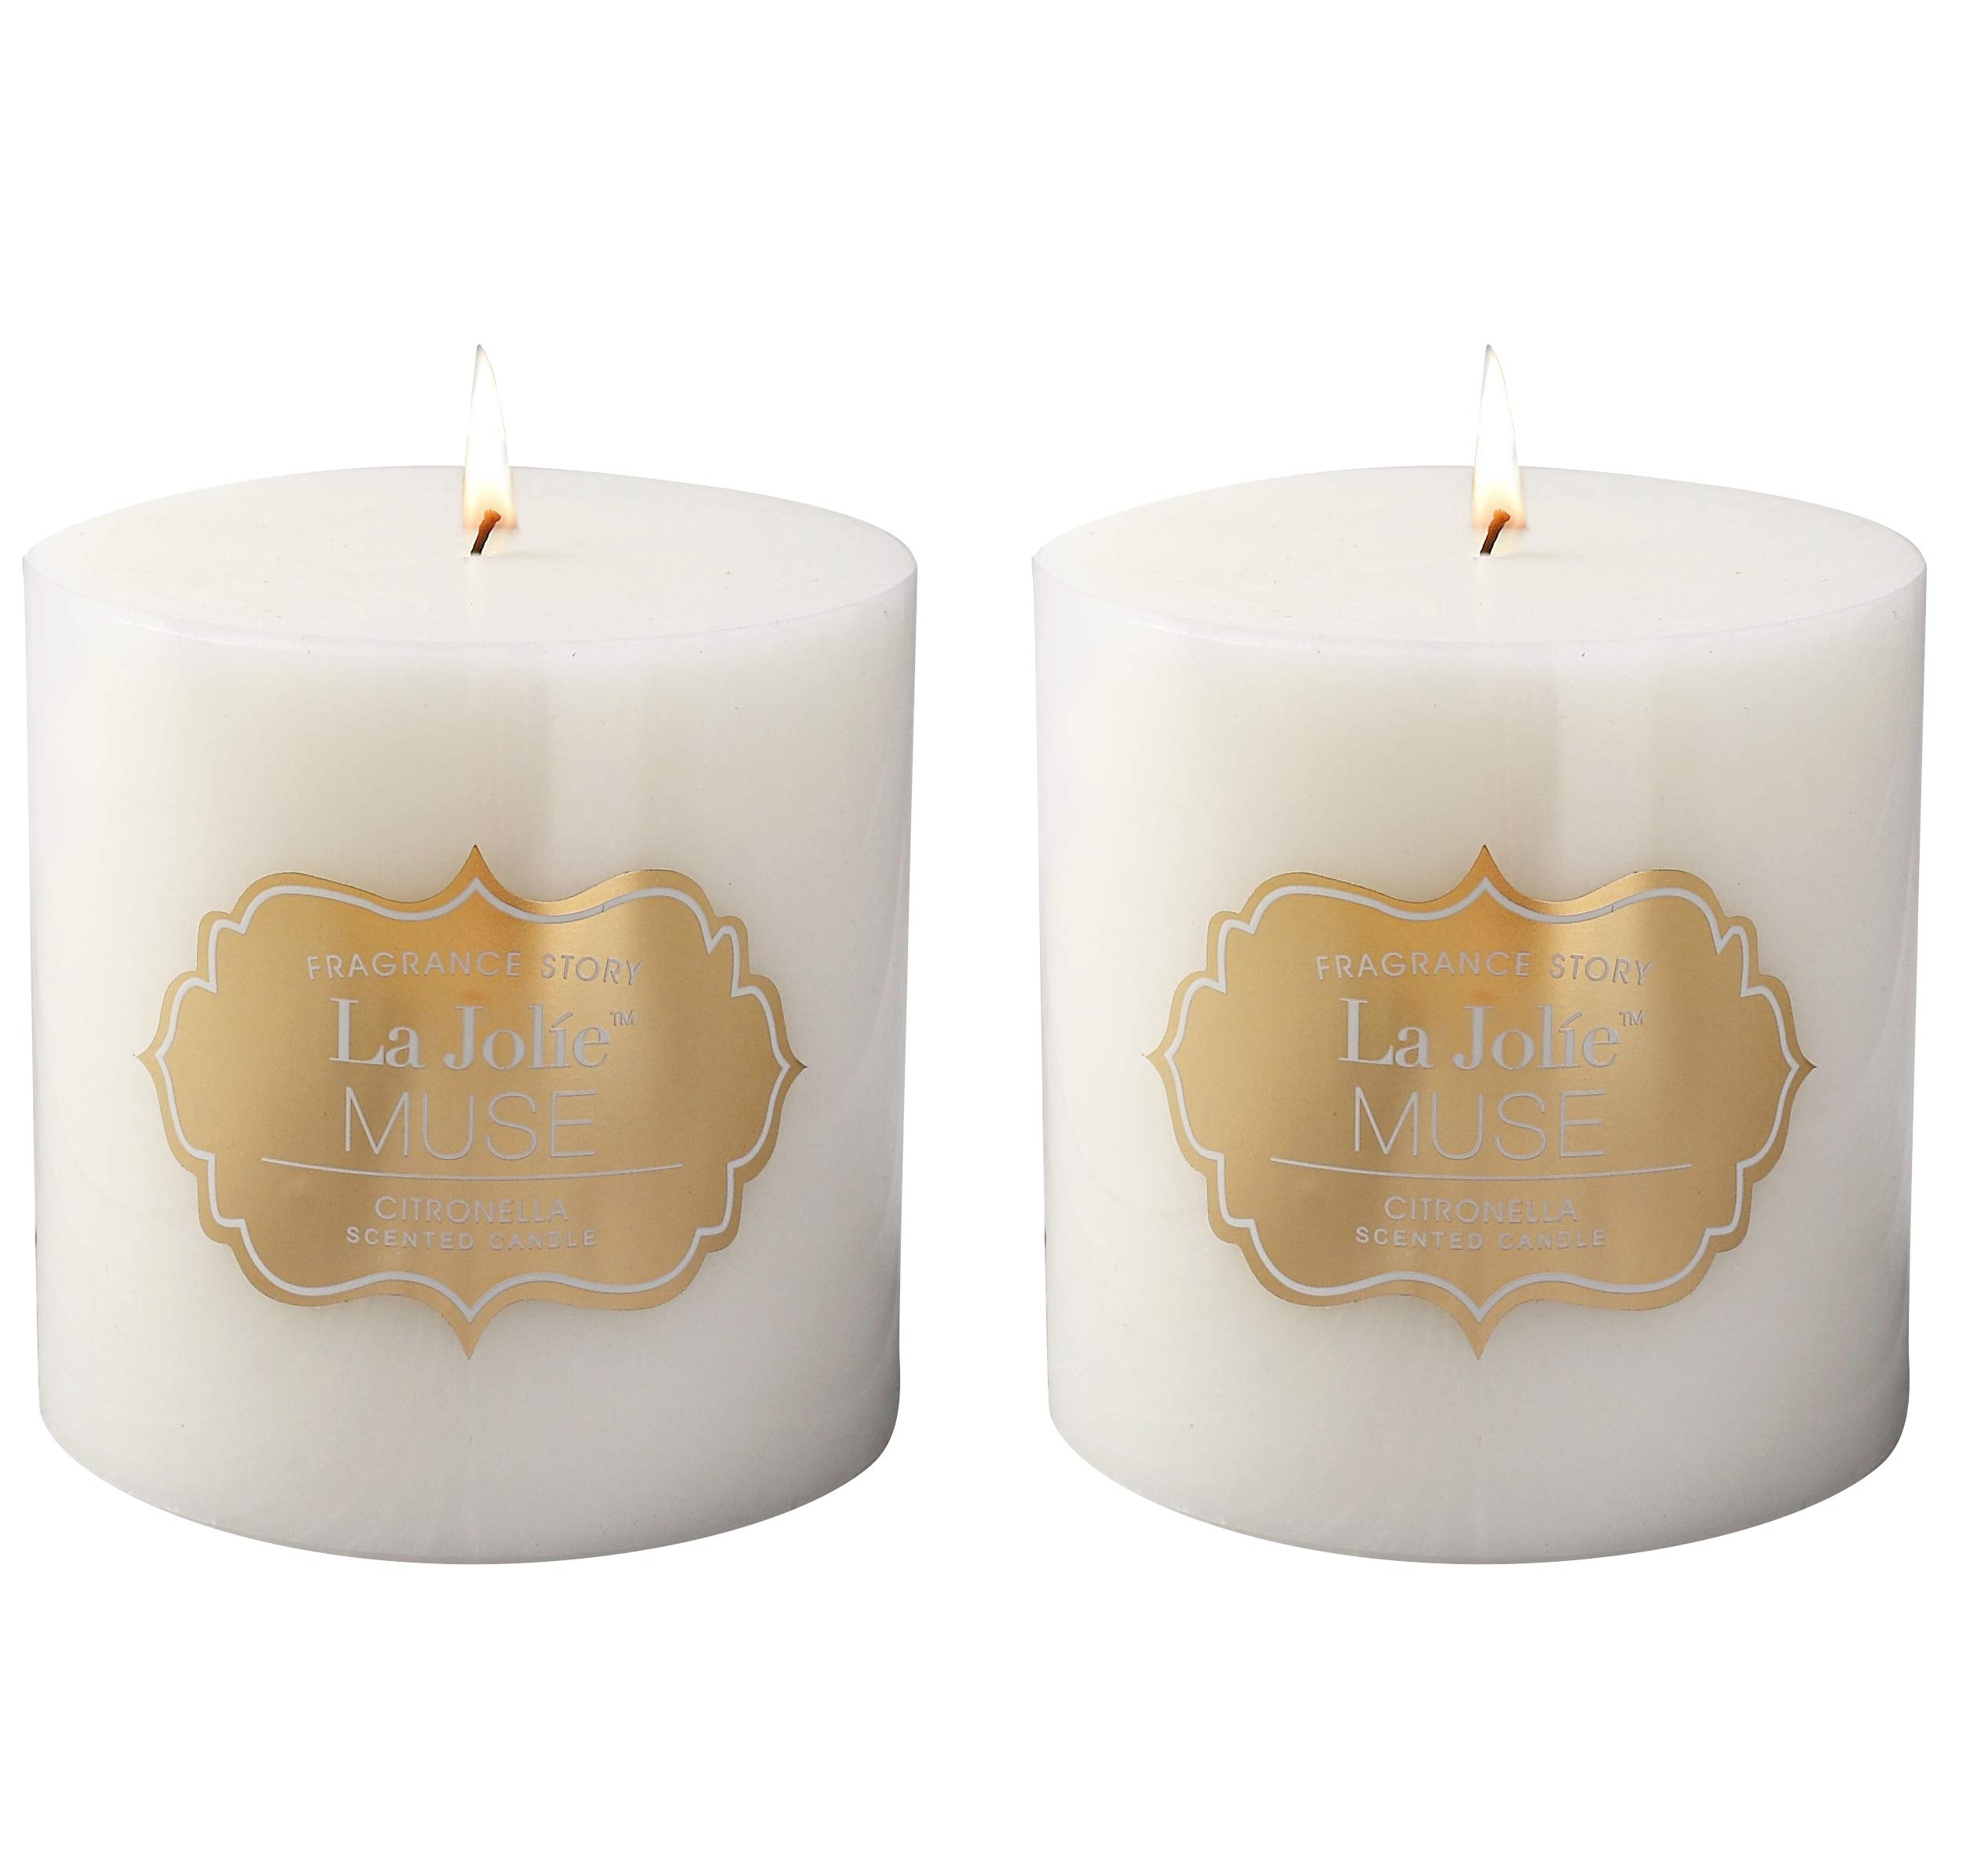 LA JOLIE MUSE Citronella Candles, Pack 2 Pillar Candle, Scented Natural Wax, 23 oz 70 Hours Burn Each, Outdoor and Indoor, White